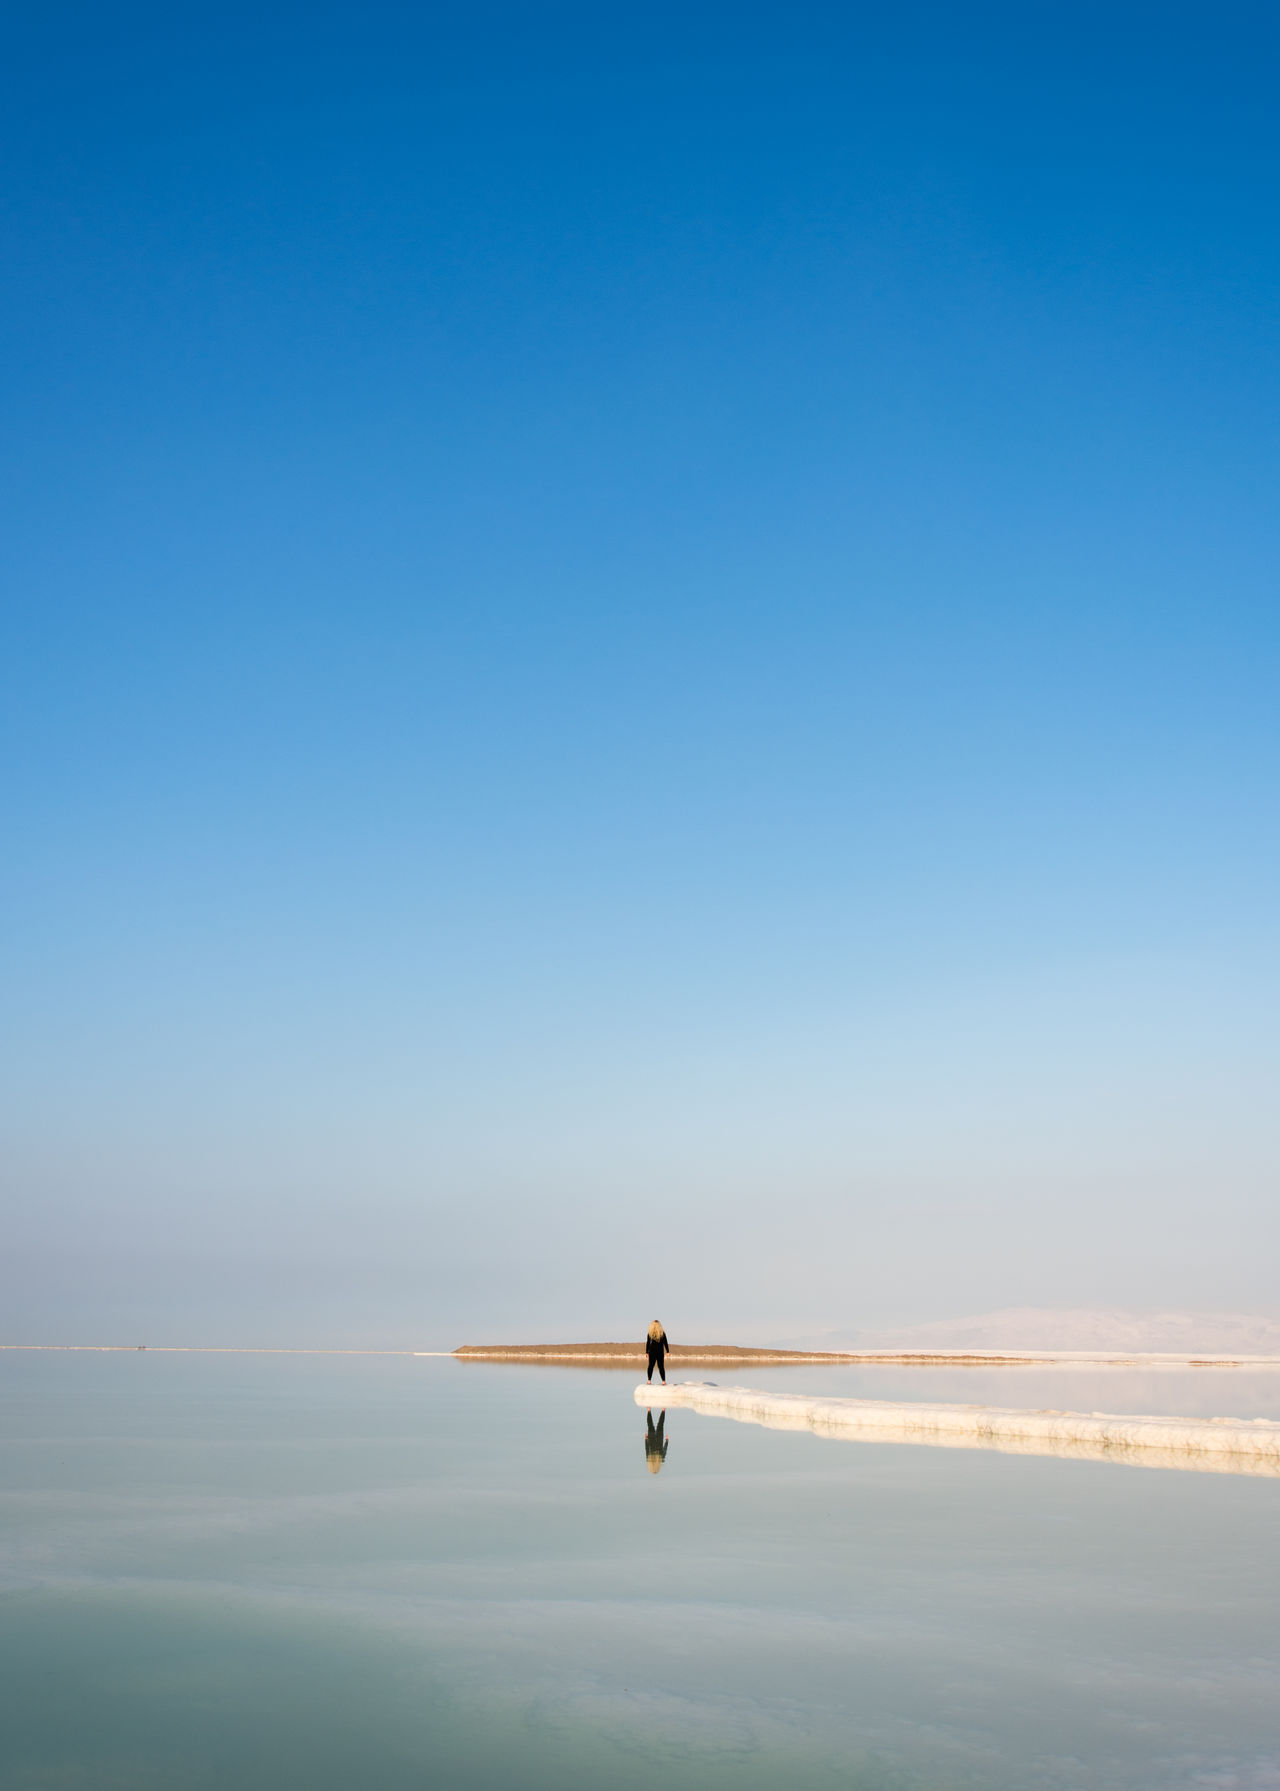 Minimalist Shooting Day At The Lowest Place On Earth -416 meters below sea level -Deadsea Israel Adventure Beauty In Nature Blue Clear Sky Deadsea Finding New Frontiers Golden Hour Israel Minimal Minimalism Minimalist Minimalobsession One Person Outdoors Reflection Reflection Reflections Salt Saltwater Tranquil Scene Tranquility Water EyeEm Team Rear View Getty X EyeEm Traveling Home For The Holidays